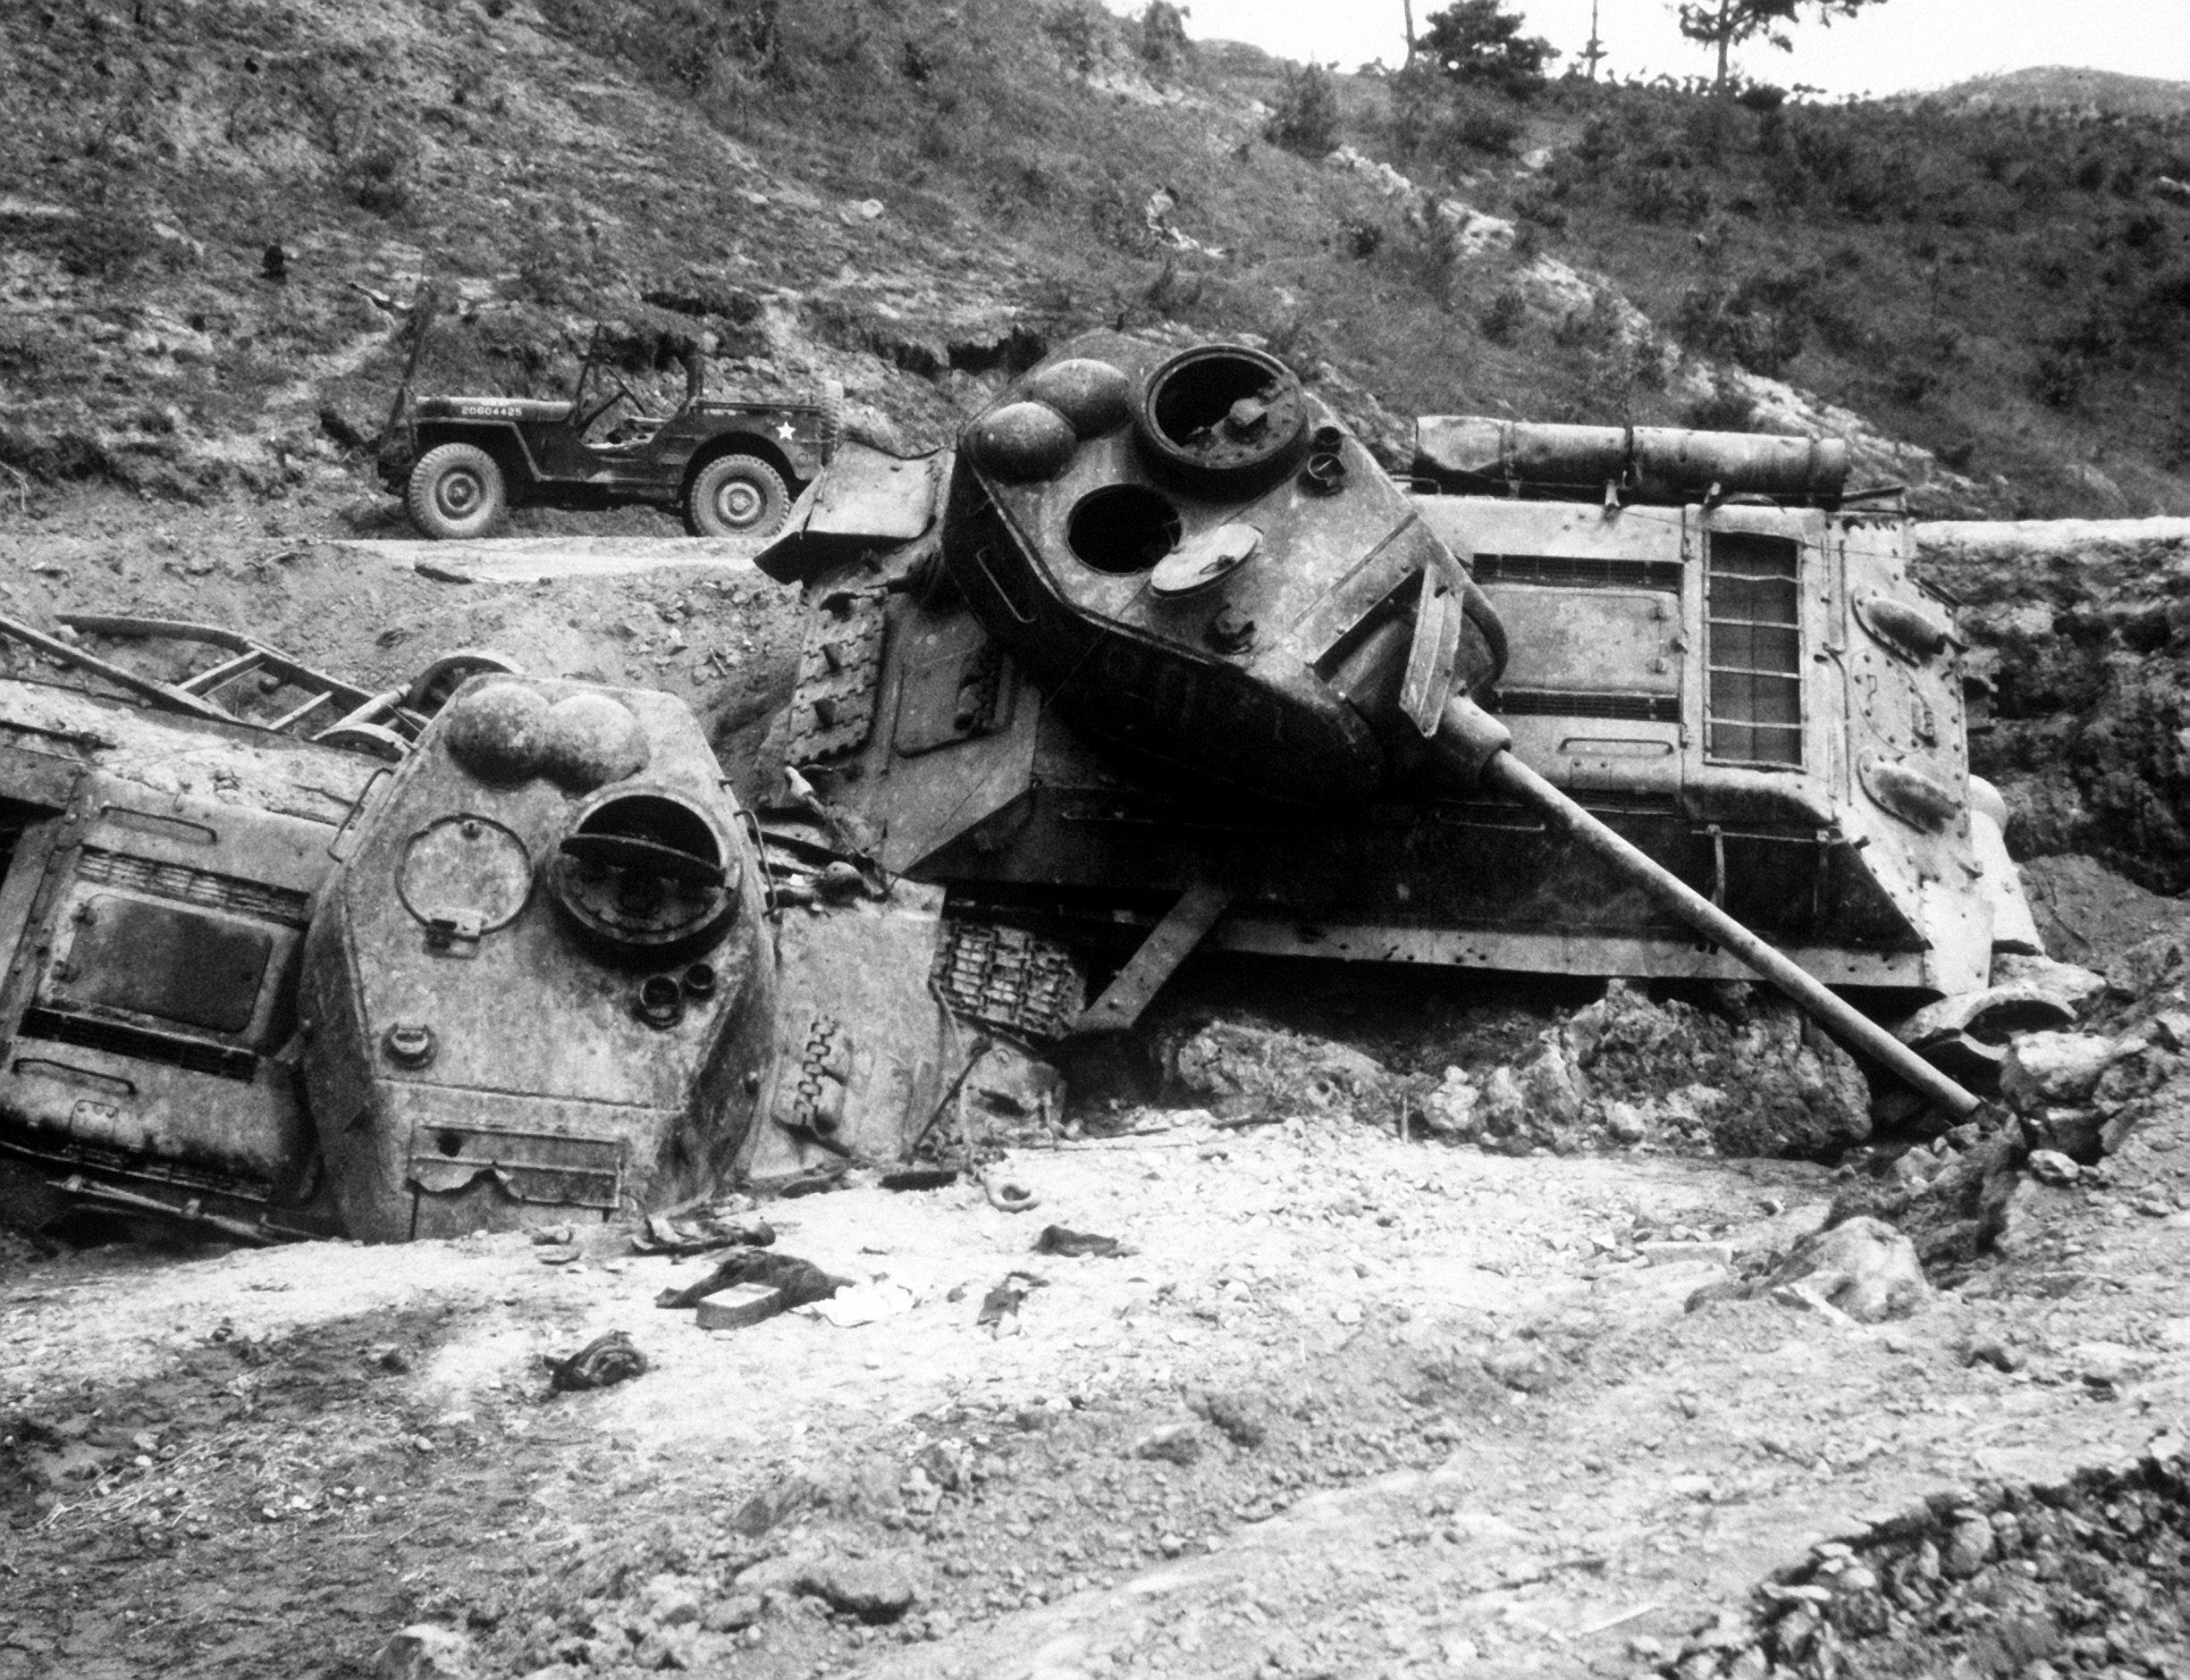 A pair of heavily damaged tanks destroyed in a ditch